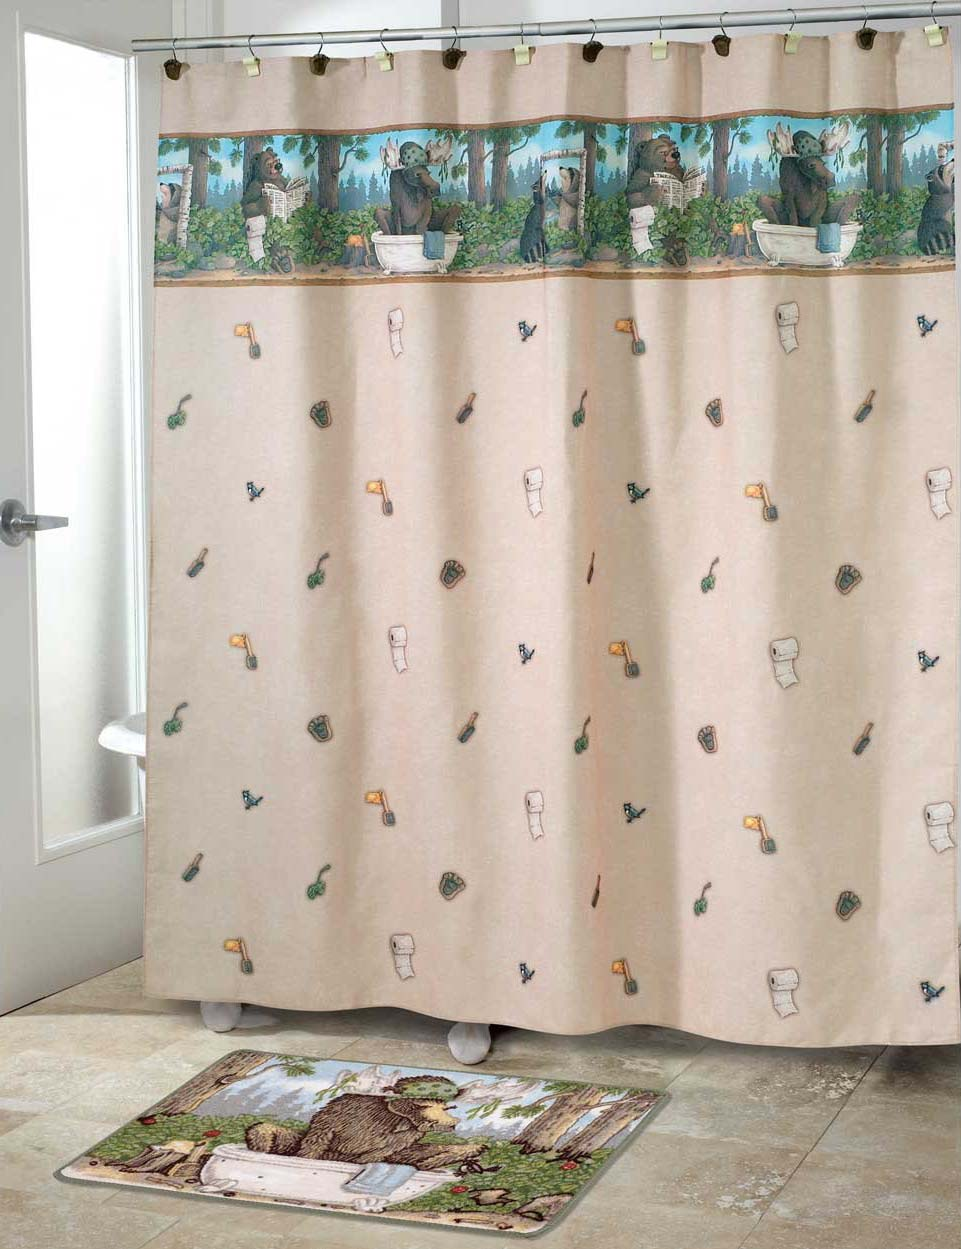 Kokopelli Shower Curtain Avanti Shower Curtains And Accessories